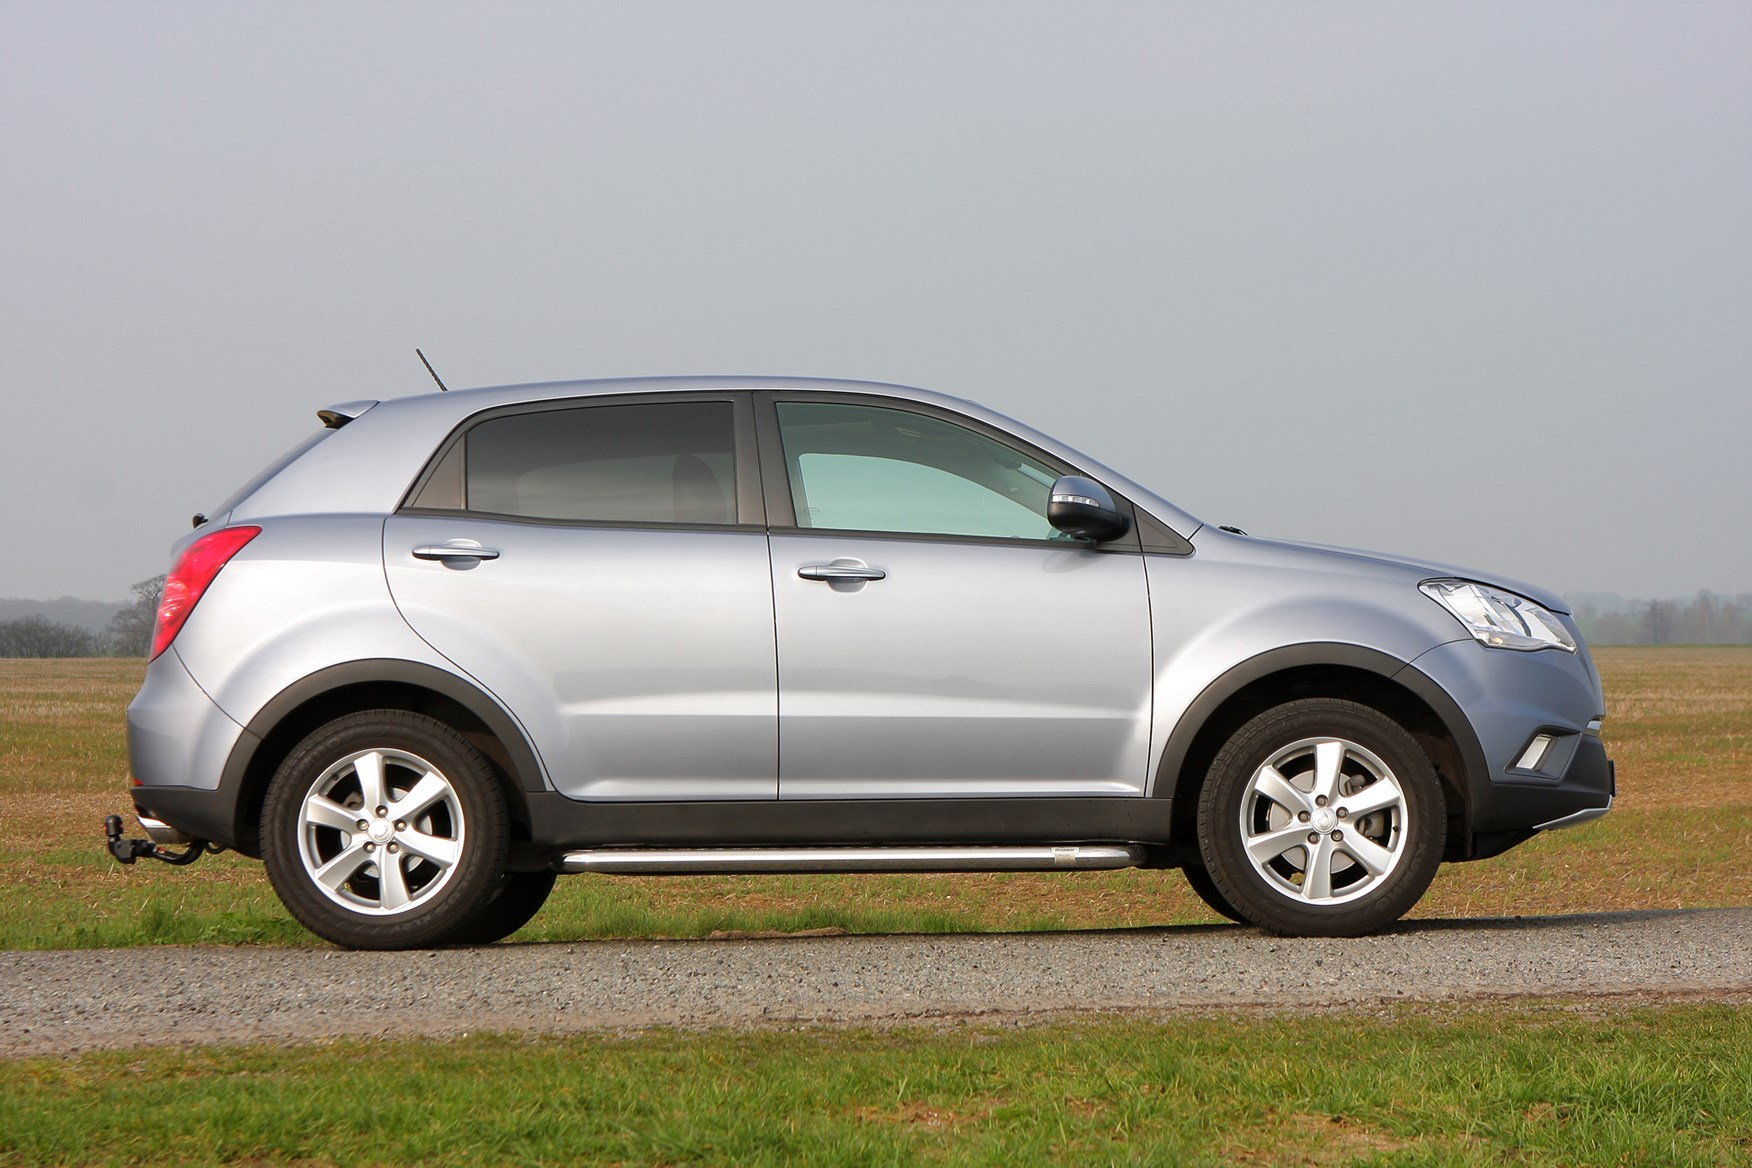 And exterior interior picture ssangyong korando turismo for What happened to luke bryans sister